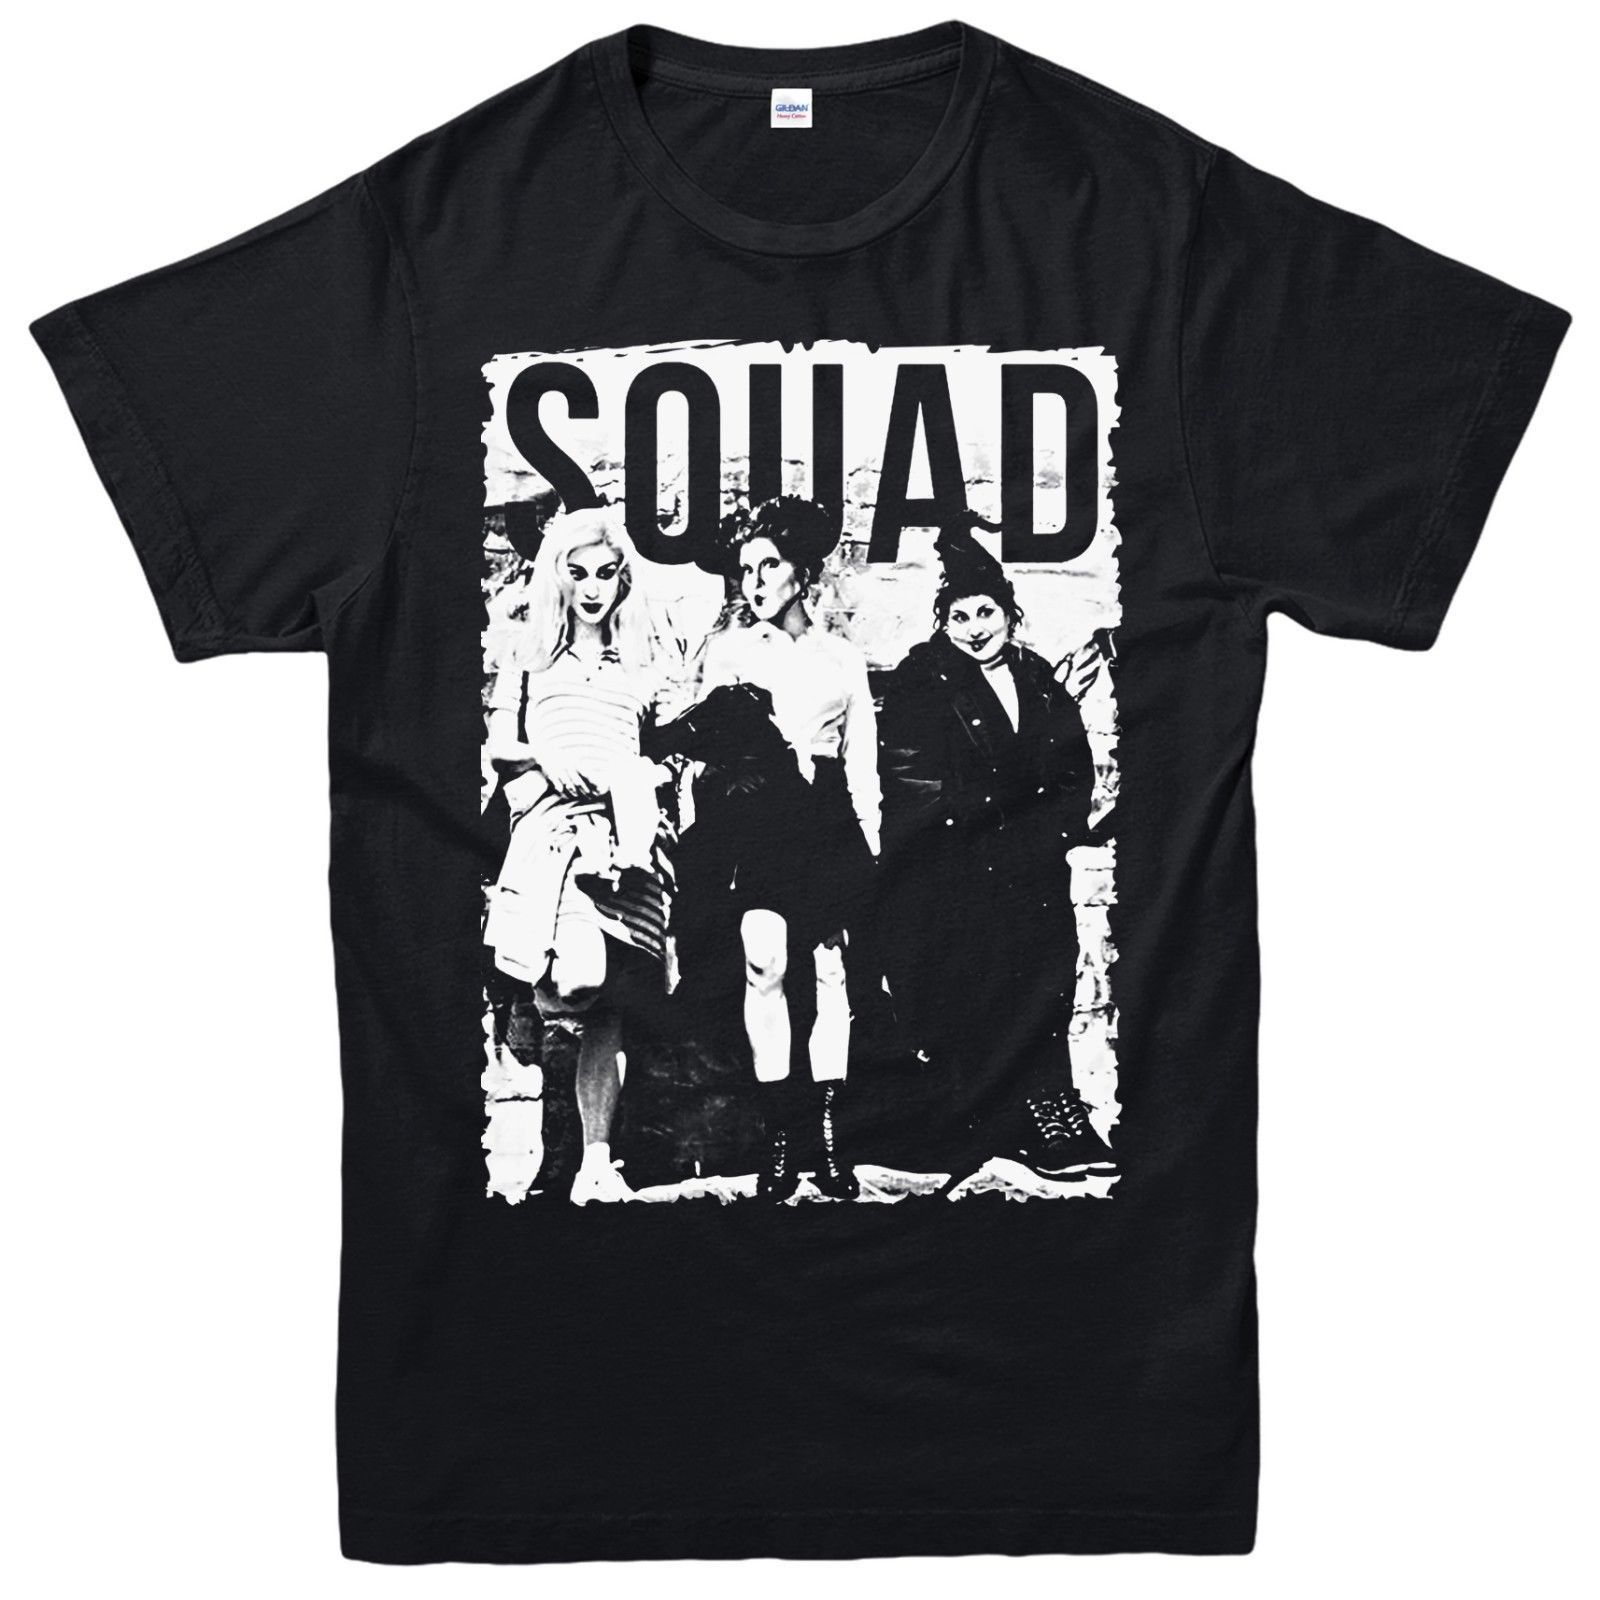 <font><b>Sanderson</b></font> <font><b>Sisters</b></font> T-Shirt Squad <font><b>Hocus</b></font> <font><b>Pocus</b></font> Movie Halloween Adult & Kids Tee Top Cool Casual pride t shirt men Unisex New image